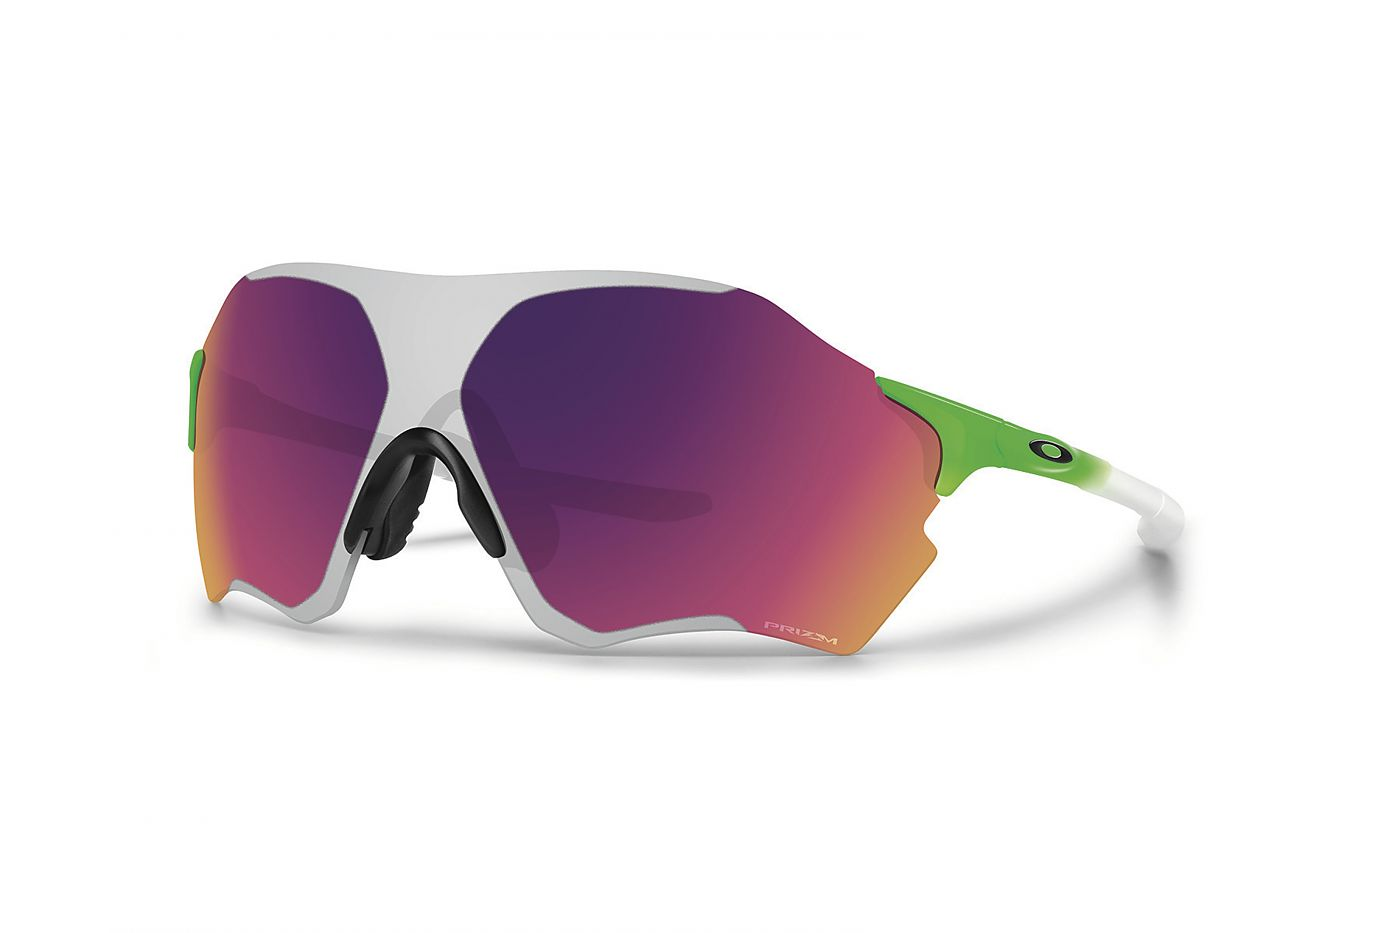 Oakley Releases Limited Edition Green Fade Collection